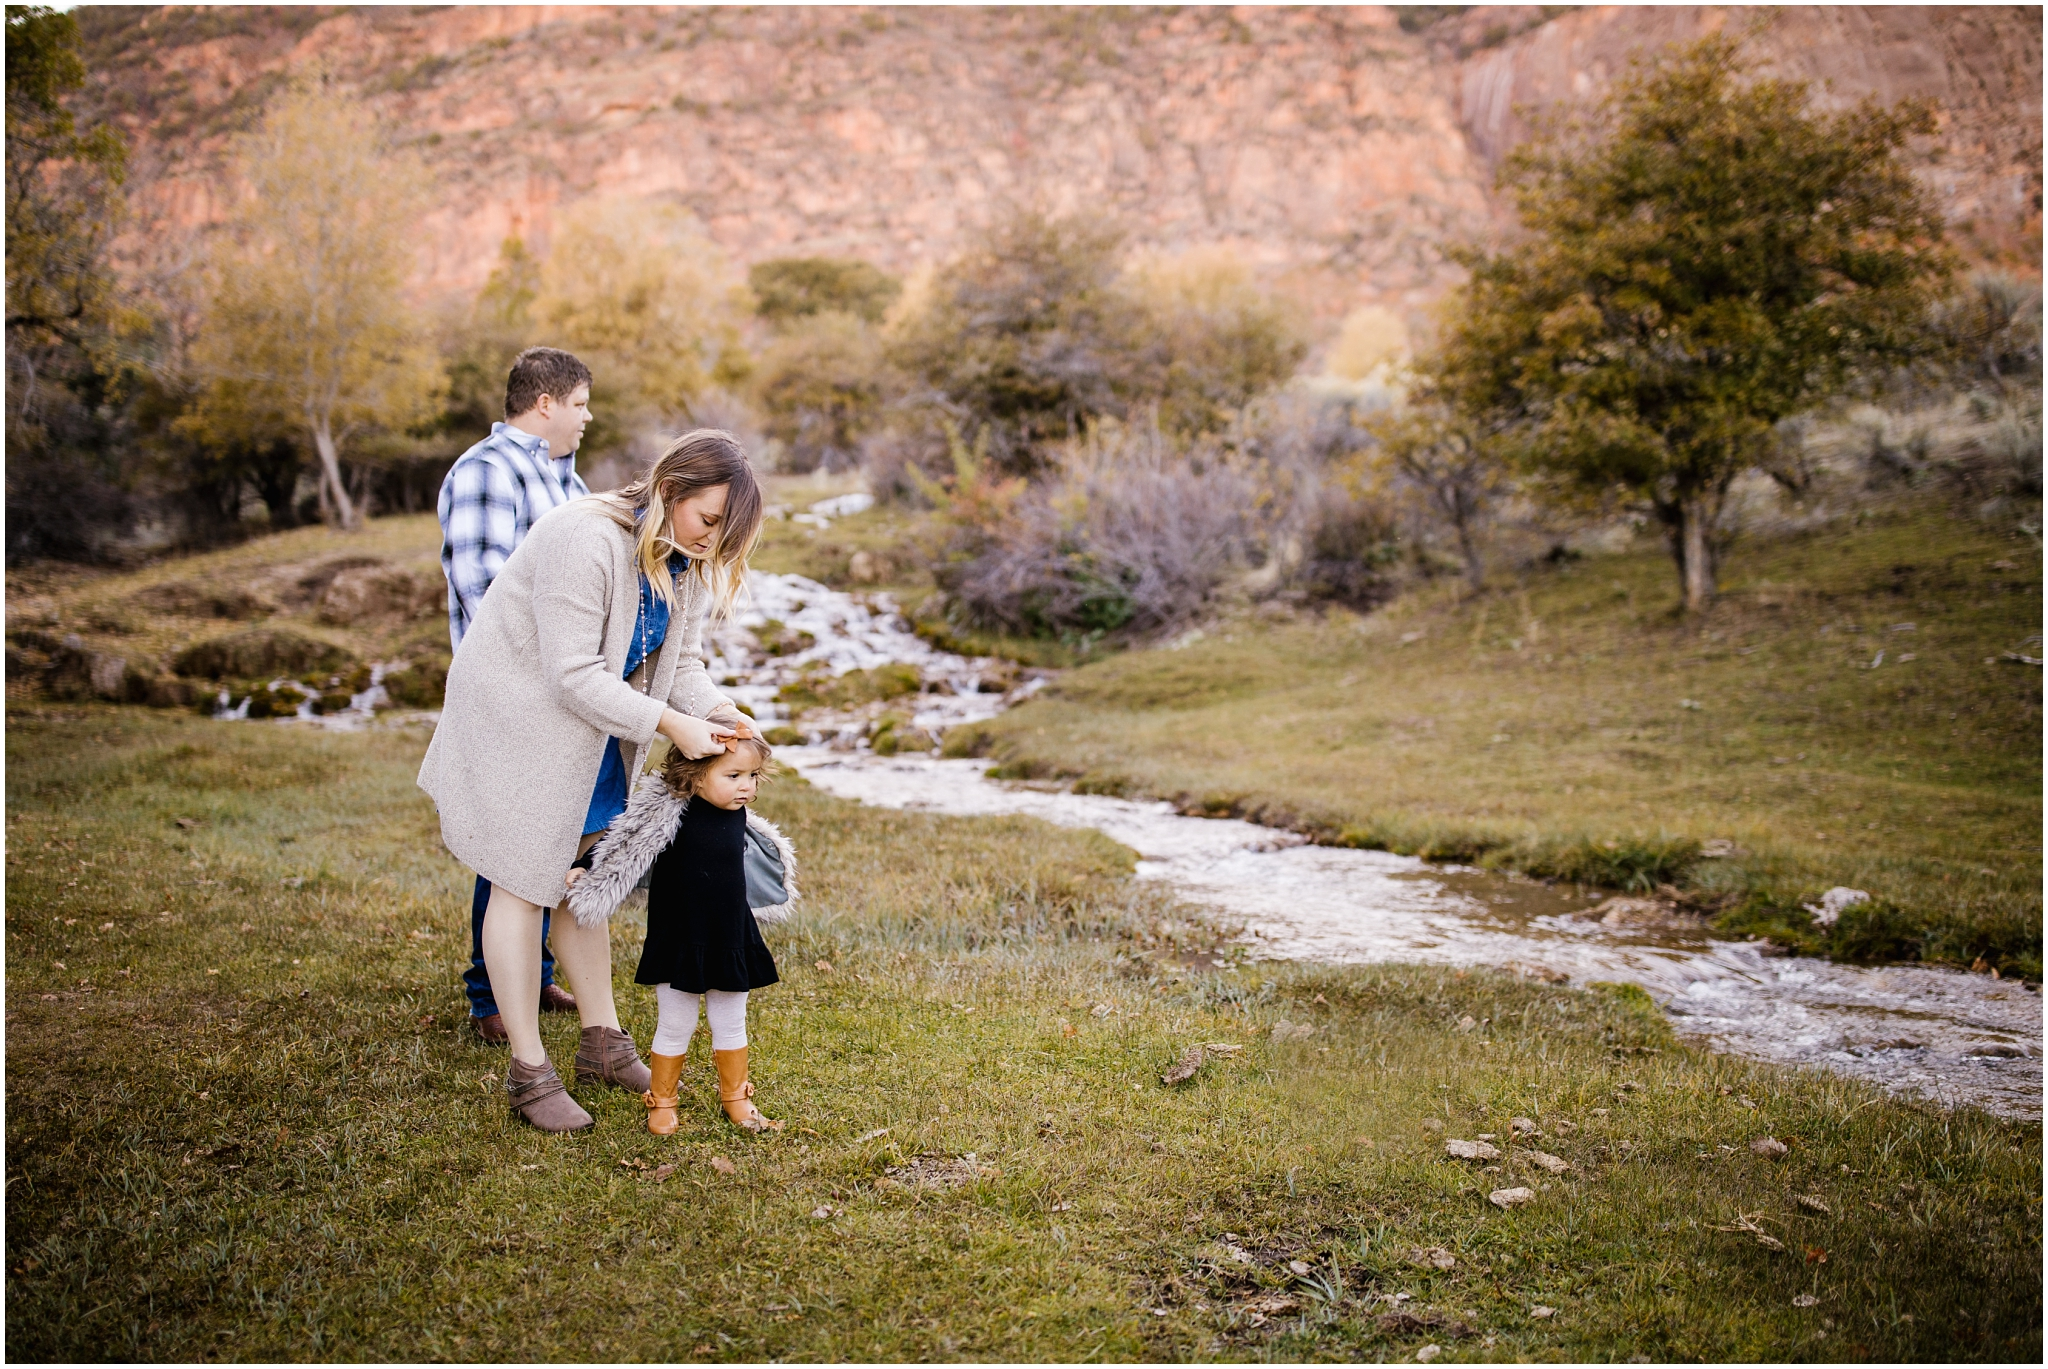 Frandsen-31_Lizzie-B-Imagery-Utah-Family-Photographer-Utah-County-Central-Utah-Park-City-Salt-Lake-City.jpg